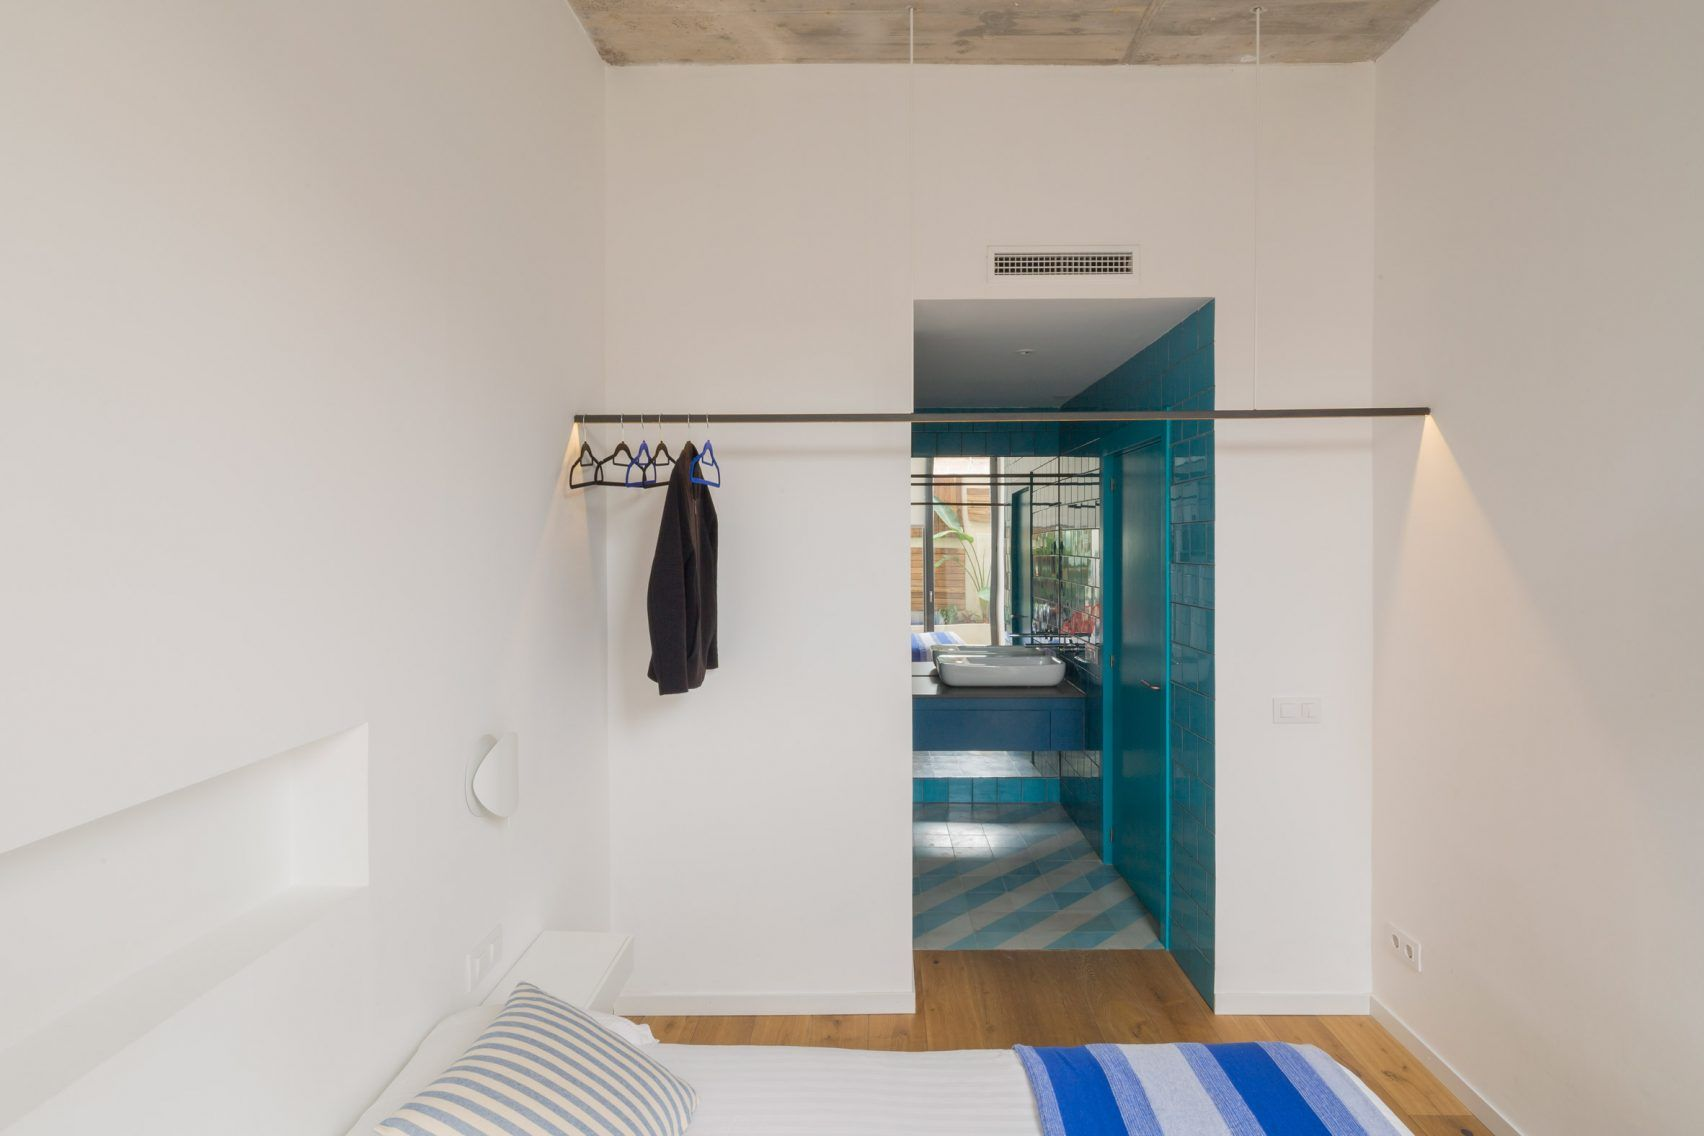 Patterned tiles define rooms in Barcelona bed and breakfast